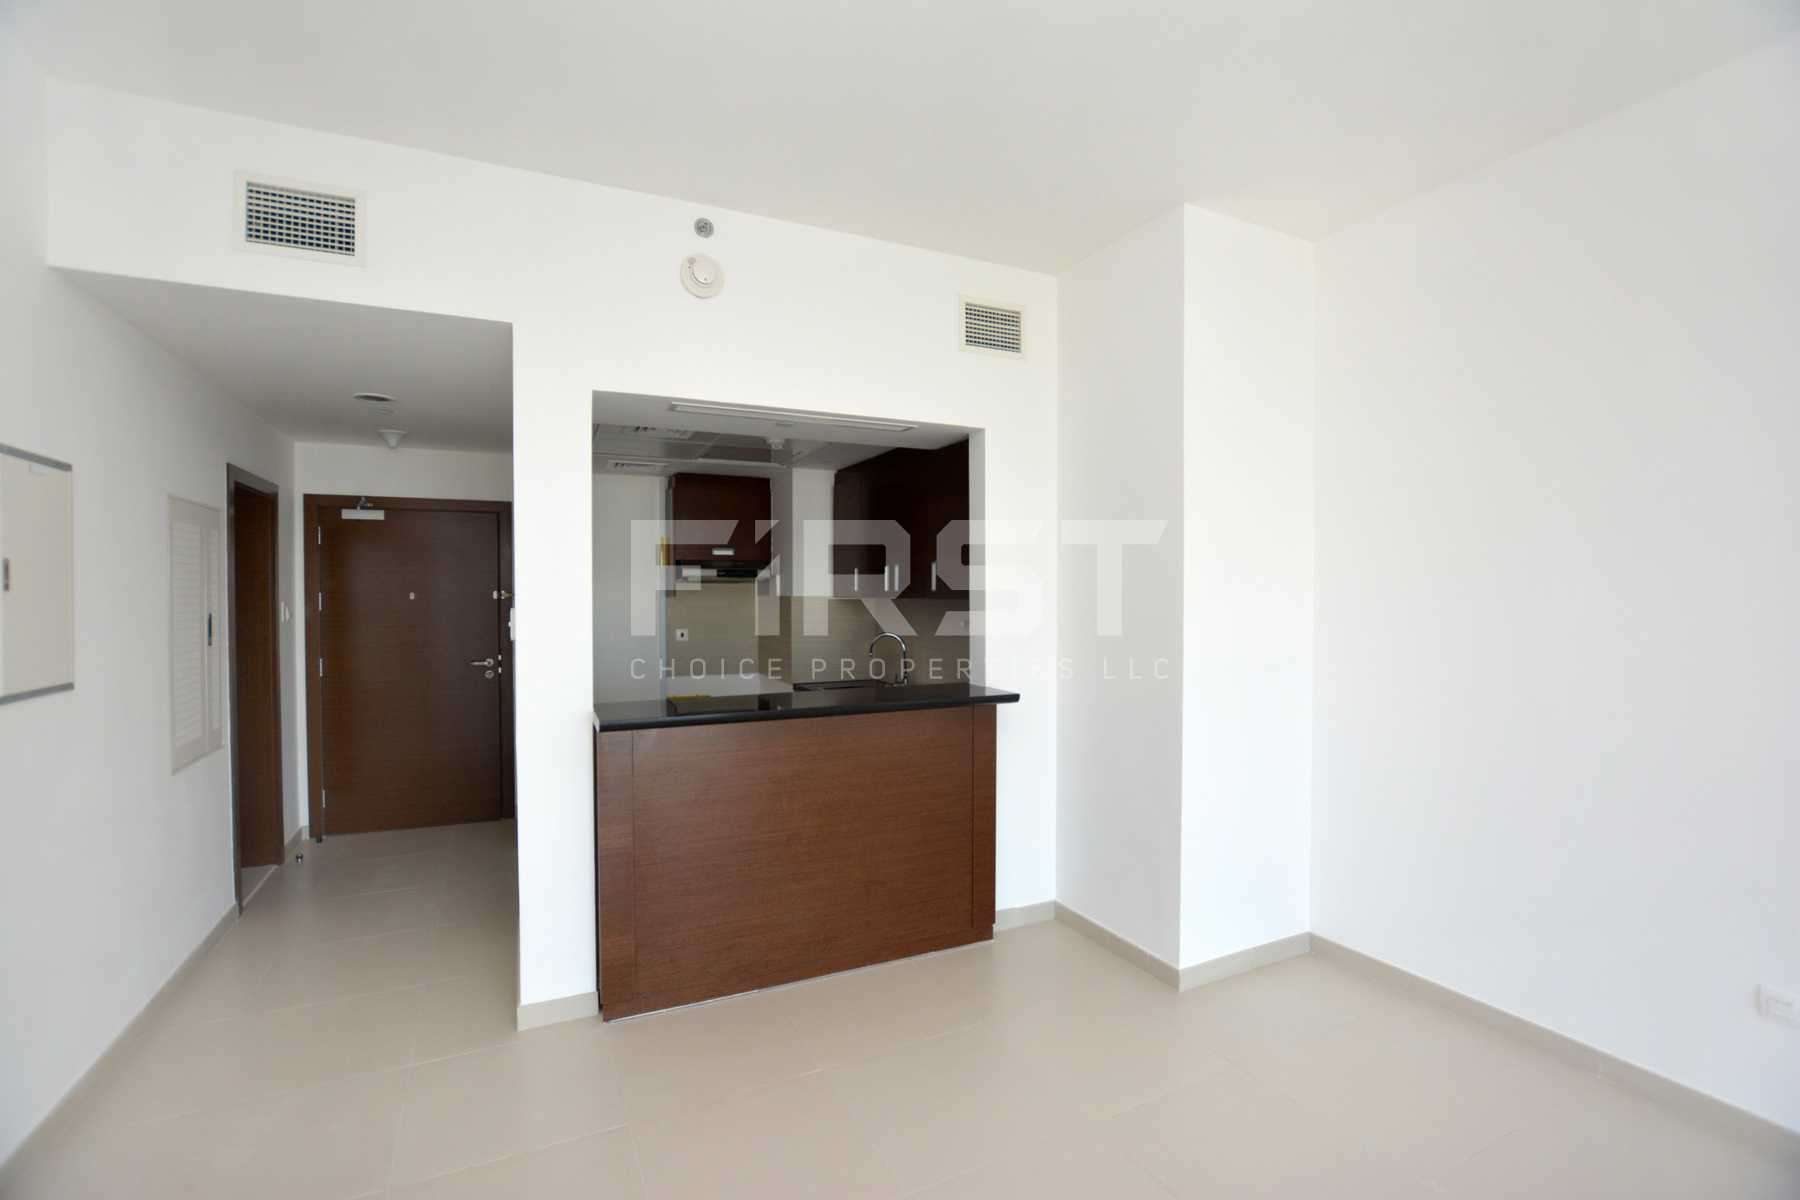 Internal Photo of 1 Bedroom Apartment in The Gate Tower Shams Abu Dhabi Al Reem Island Abu Dhabi UAE (11).jpg